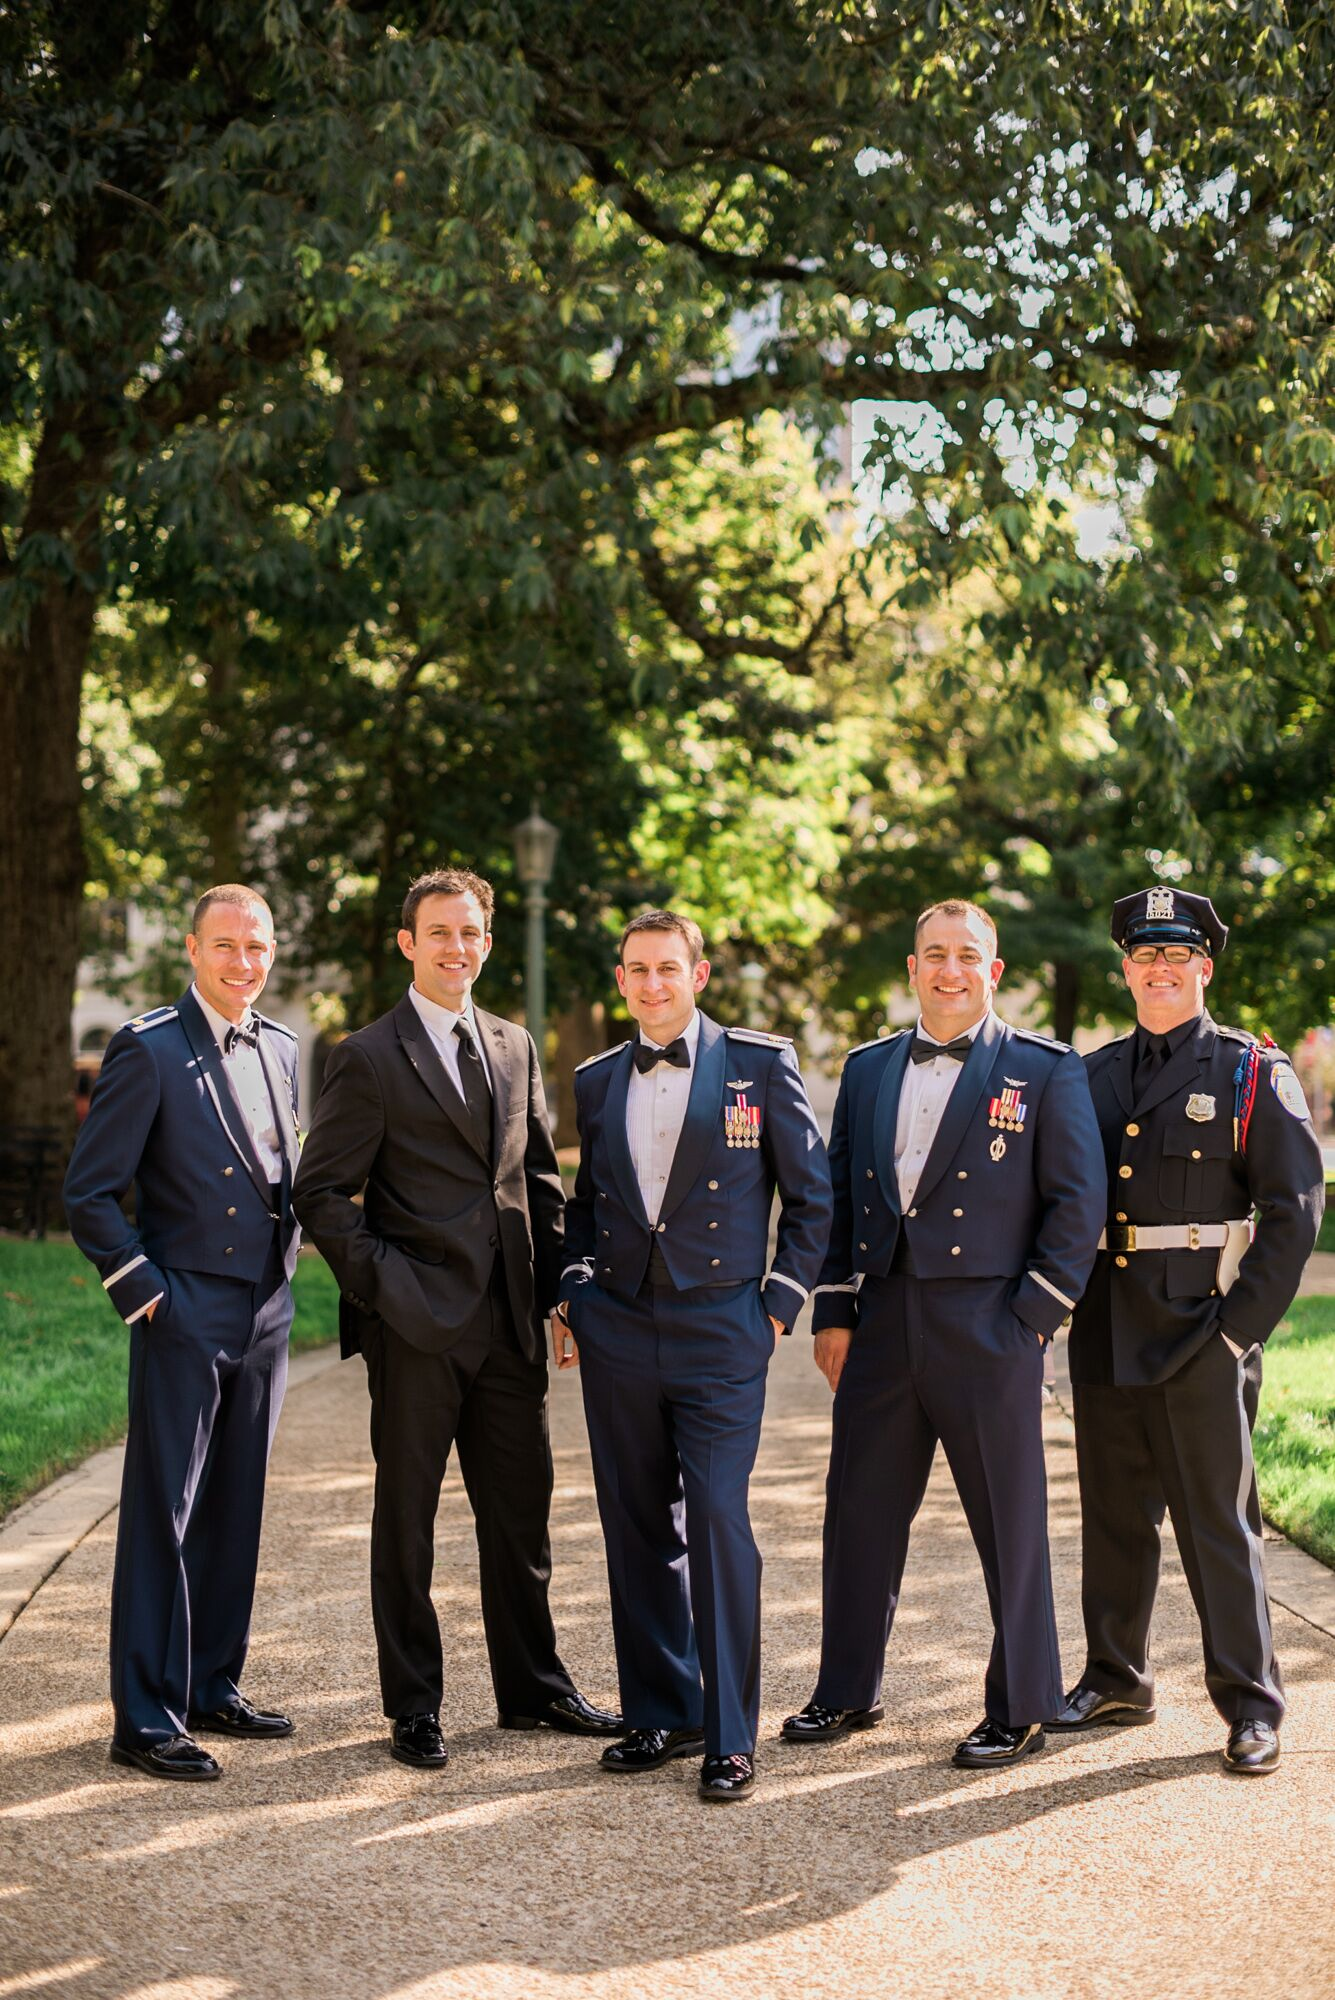 Traditional Military Uniform Groomsmen Attire